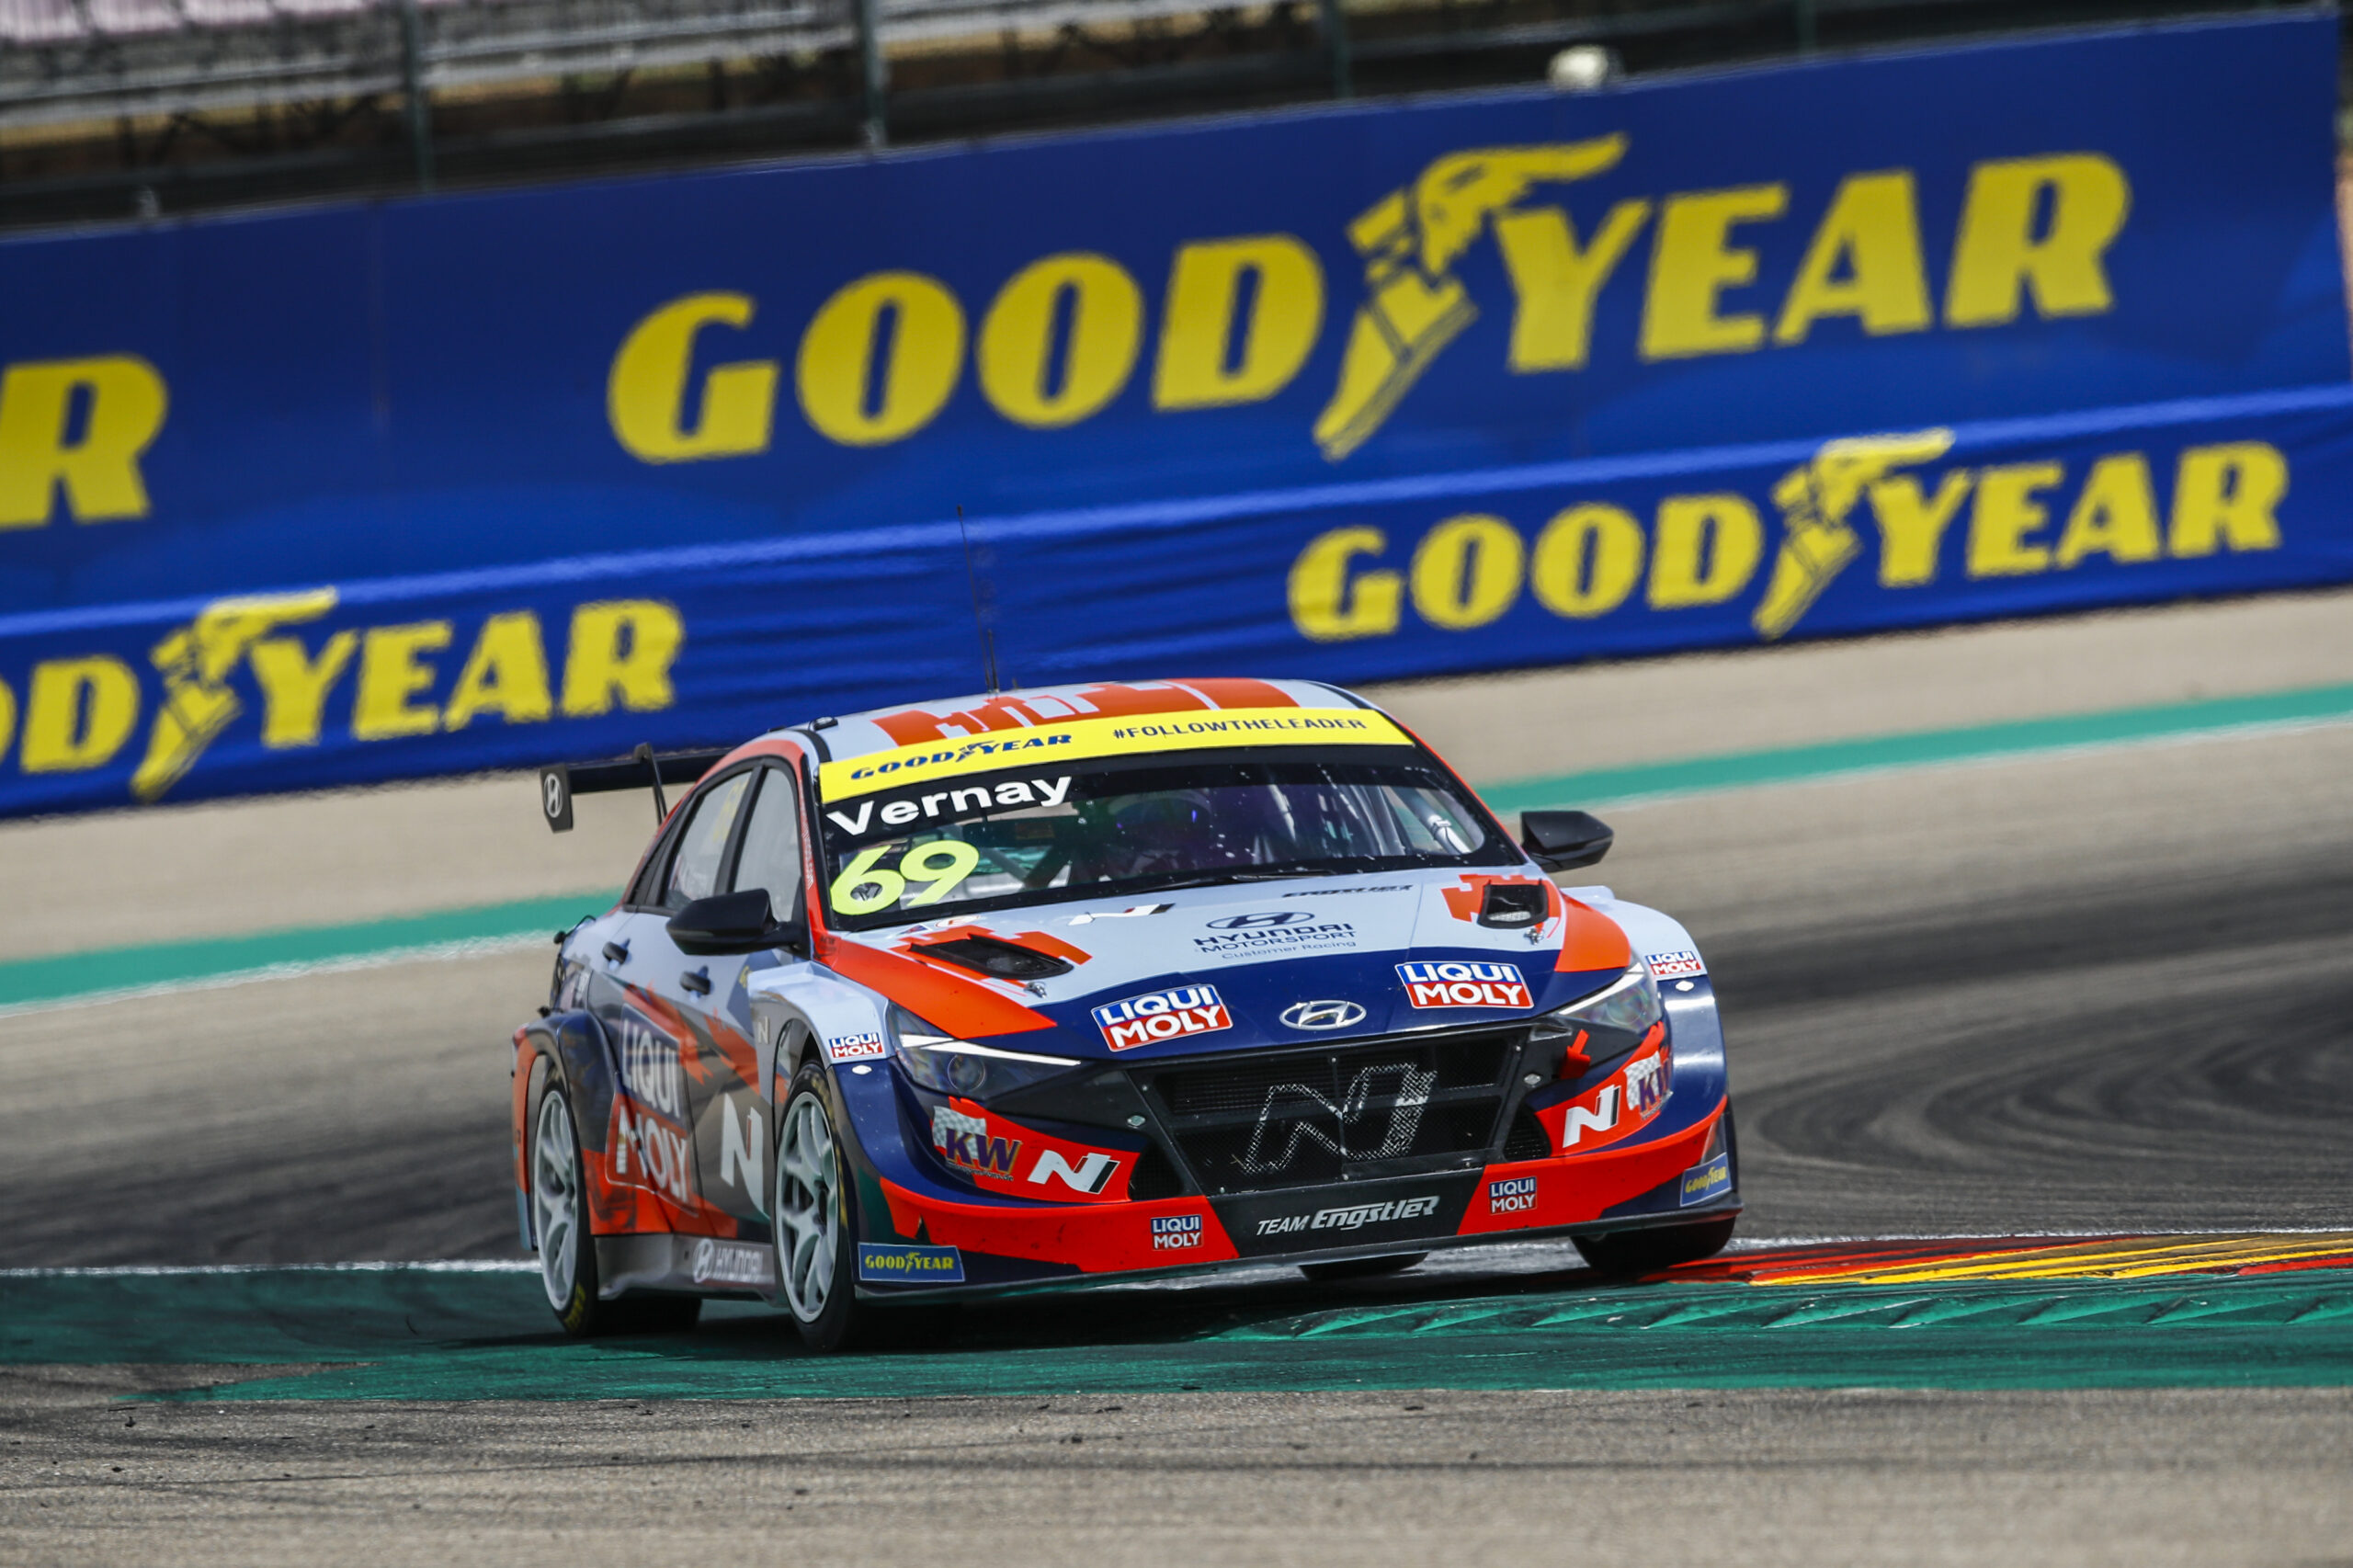 Elantra N TCR driver stretches lead in FIA WTCR points